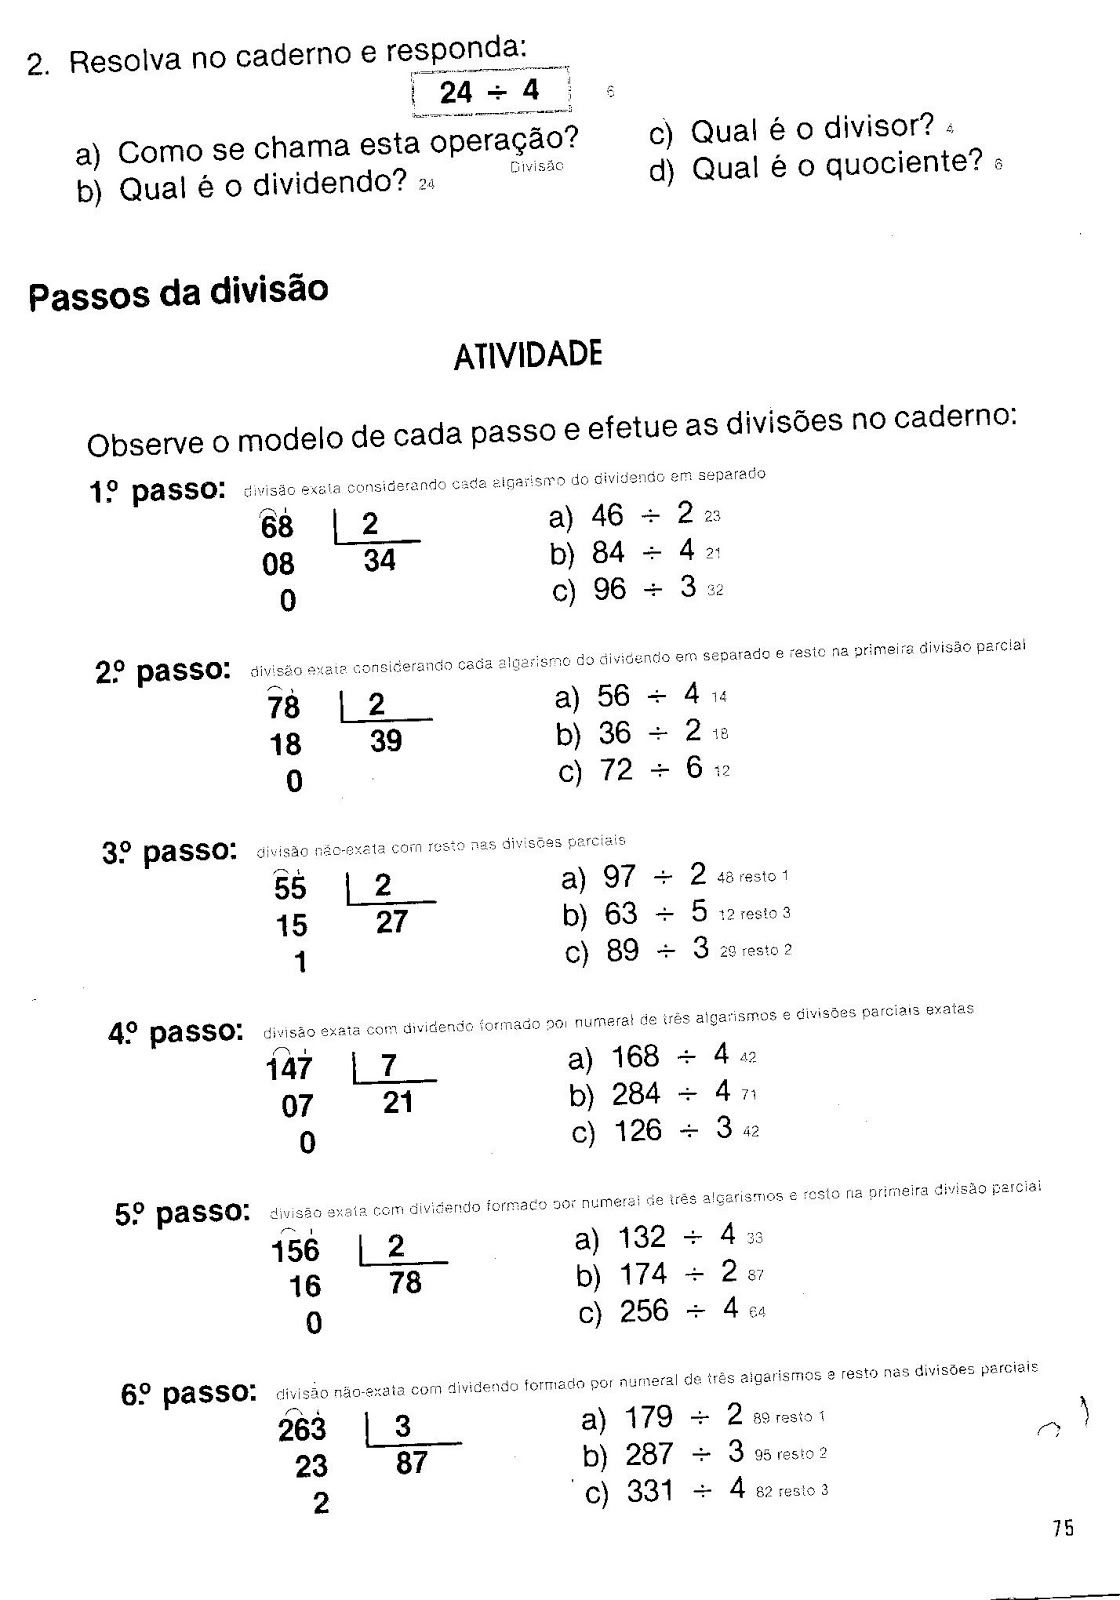 Passos da diviso matematica 1 2 pinterest math kids letters passos da diviso matematica 1 2 pinterest math kids letters and fun learning fandeluxe Images